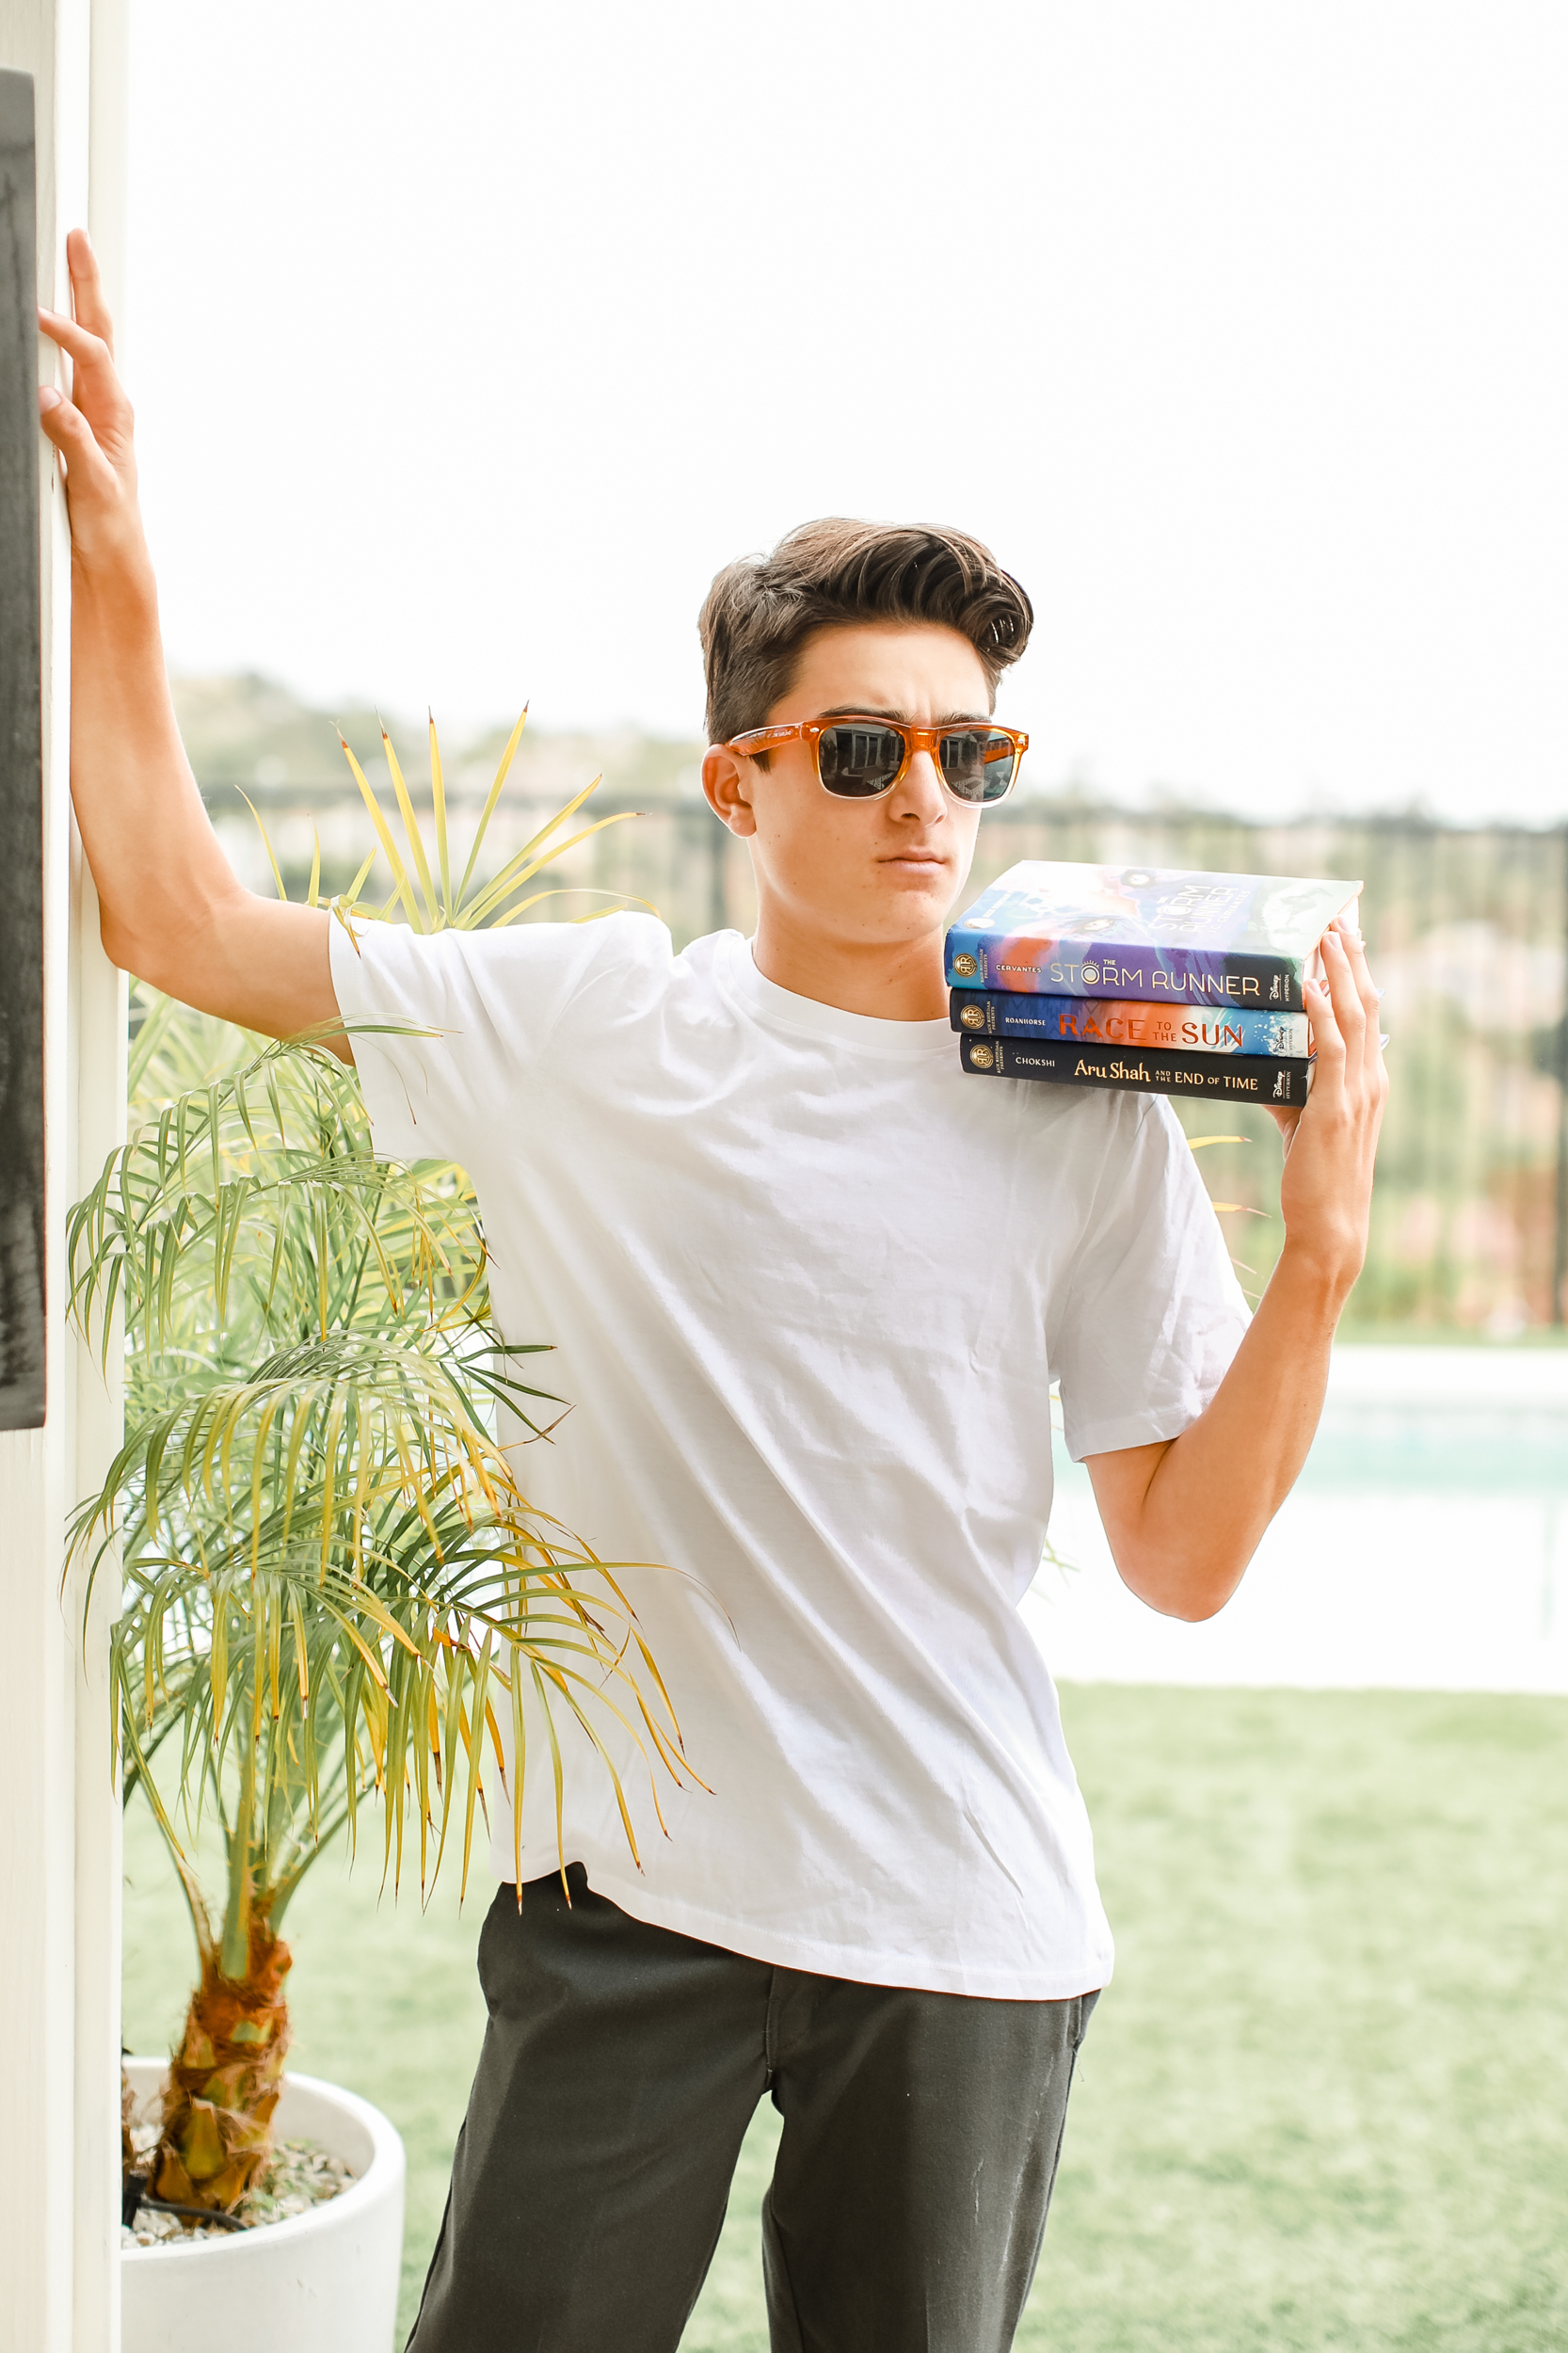 boy holding stack of books